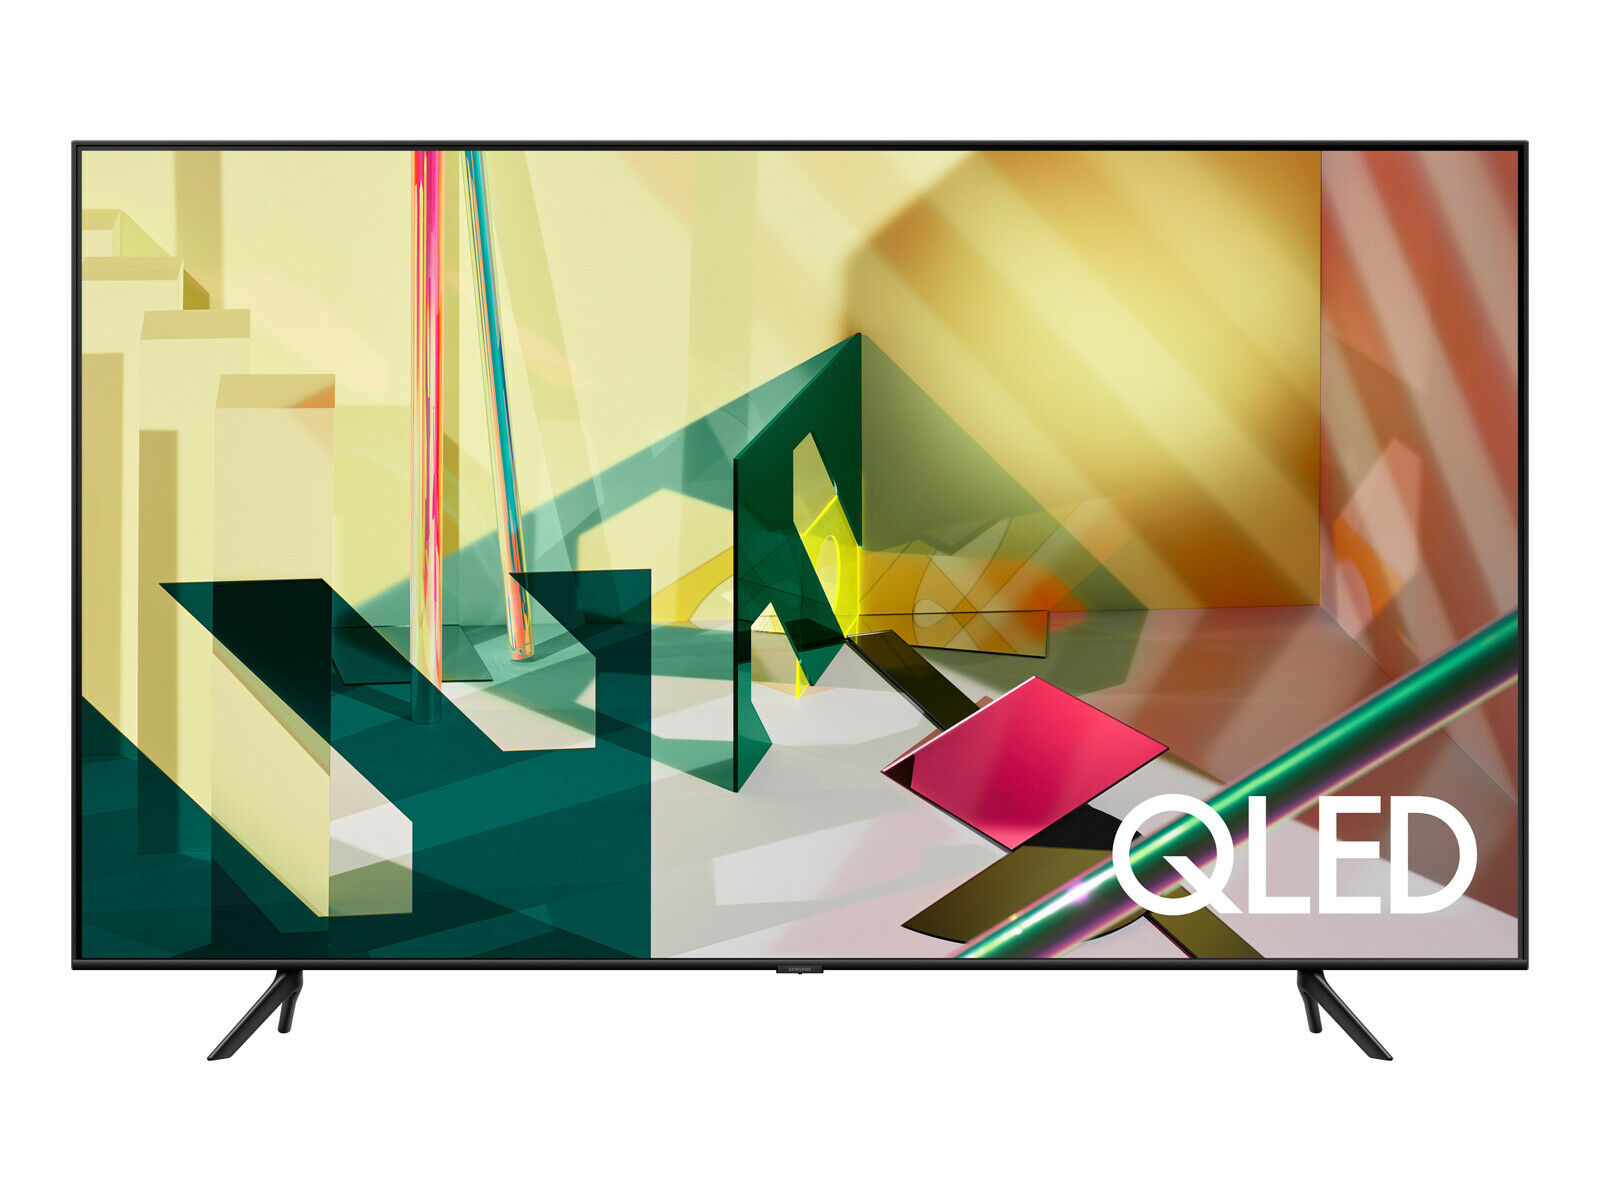 Samsung QN82Q70 QLED 82 Quantum 4K UHD HDR Smart TV . Available Now for 1799.00